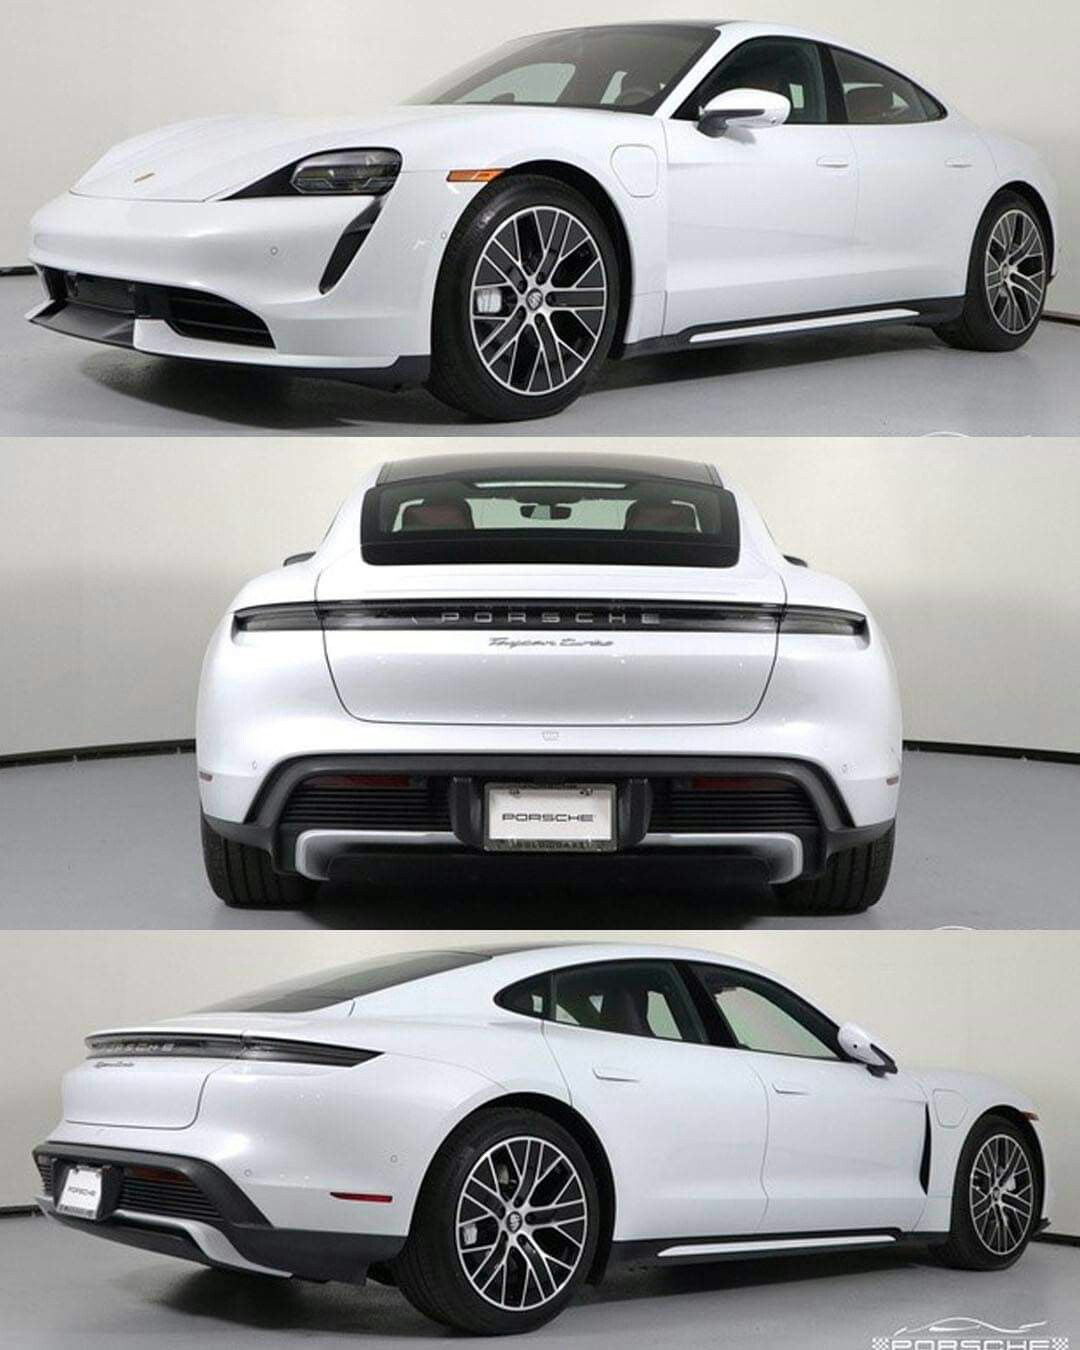 Pin By Scott Brawley On Electric Vehicles In 2020 Electric Cars Suv Car Porsche